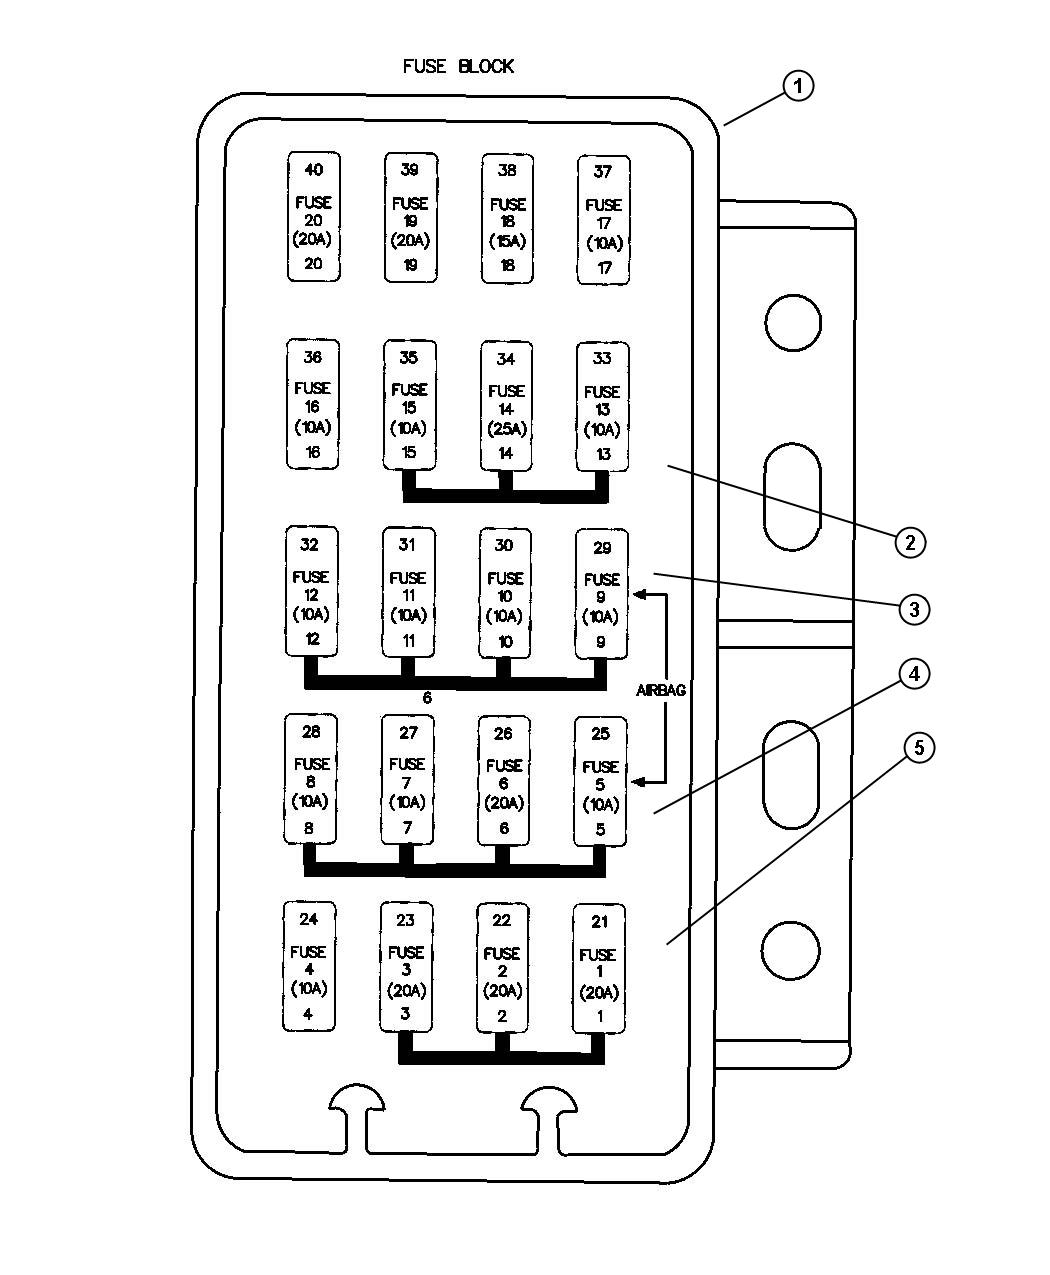 Fuse Block Relays and Fuses